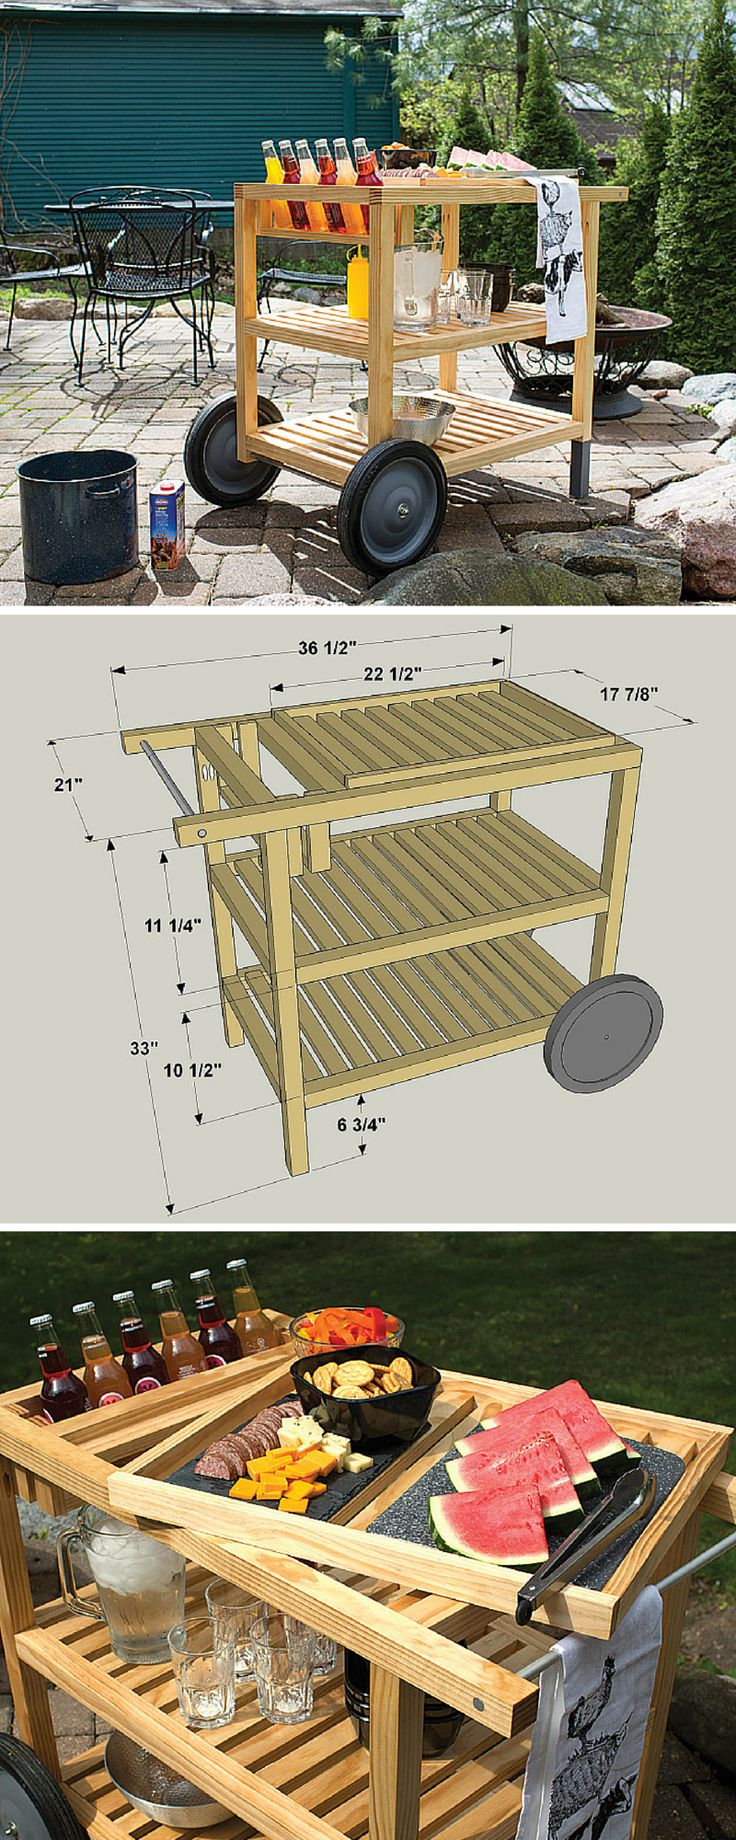 "How to build a DIY Outdoor Serving Cart | Free printable project plans at buildsomething.com | Make outdoor entertaining easy with this serving cart. It offers lots of space for storing food, tableware, and outdoor supplies, plus it cradles bottles where they're easy to reach but protected from spills. The top ""shelf"" is a lift-off tray, so you can carry supplies from the cart to your table."